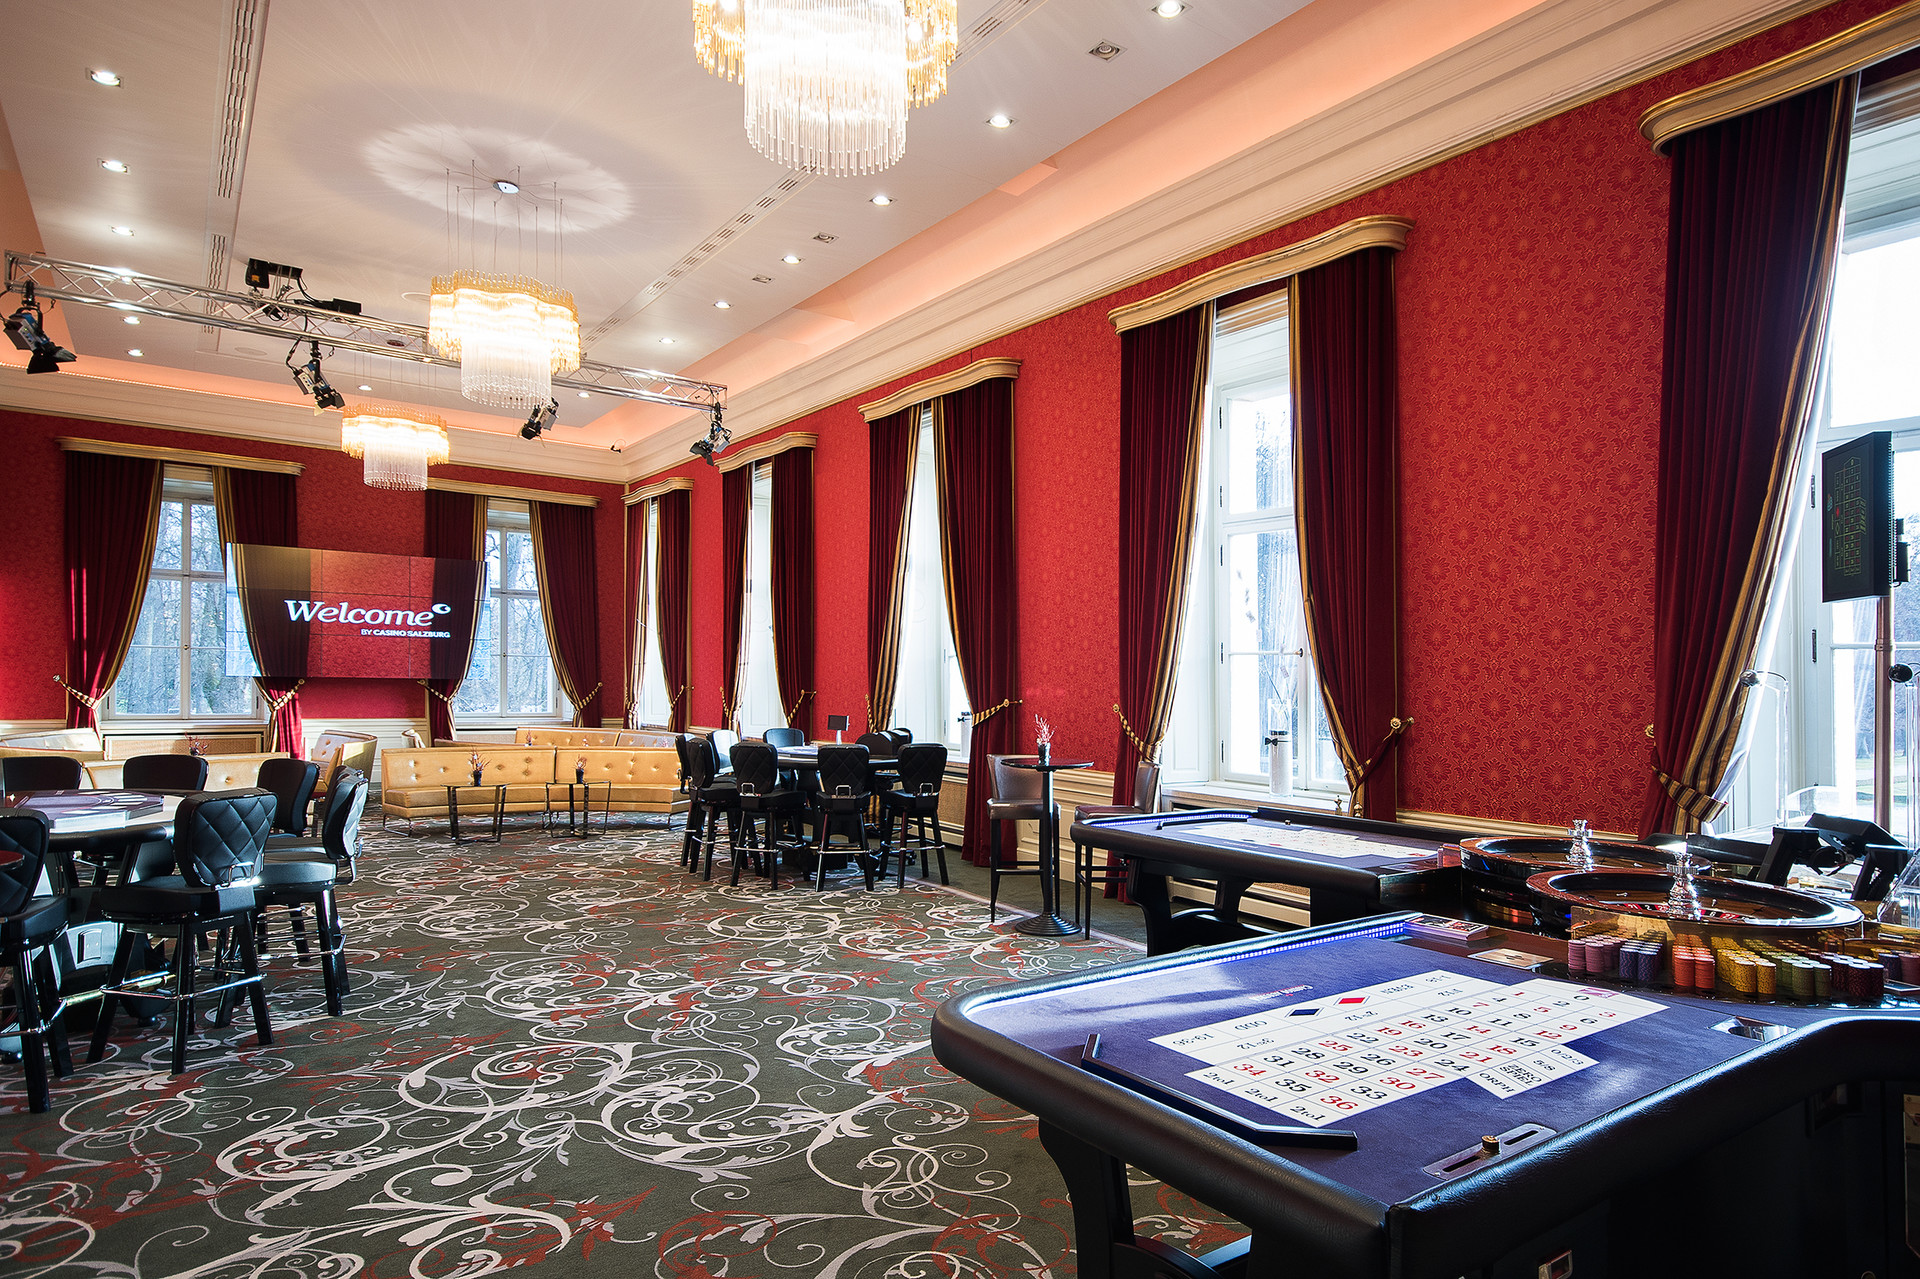 Dinner und casino night salzburg darwin casino poker room